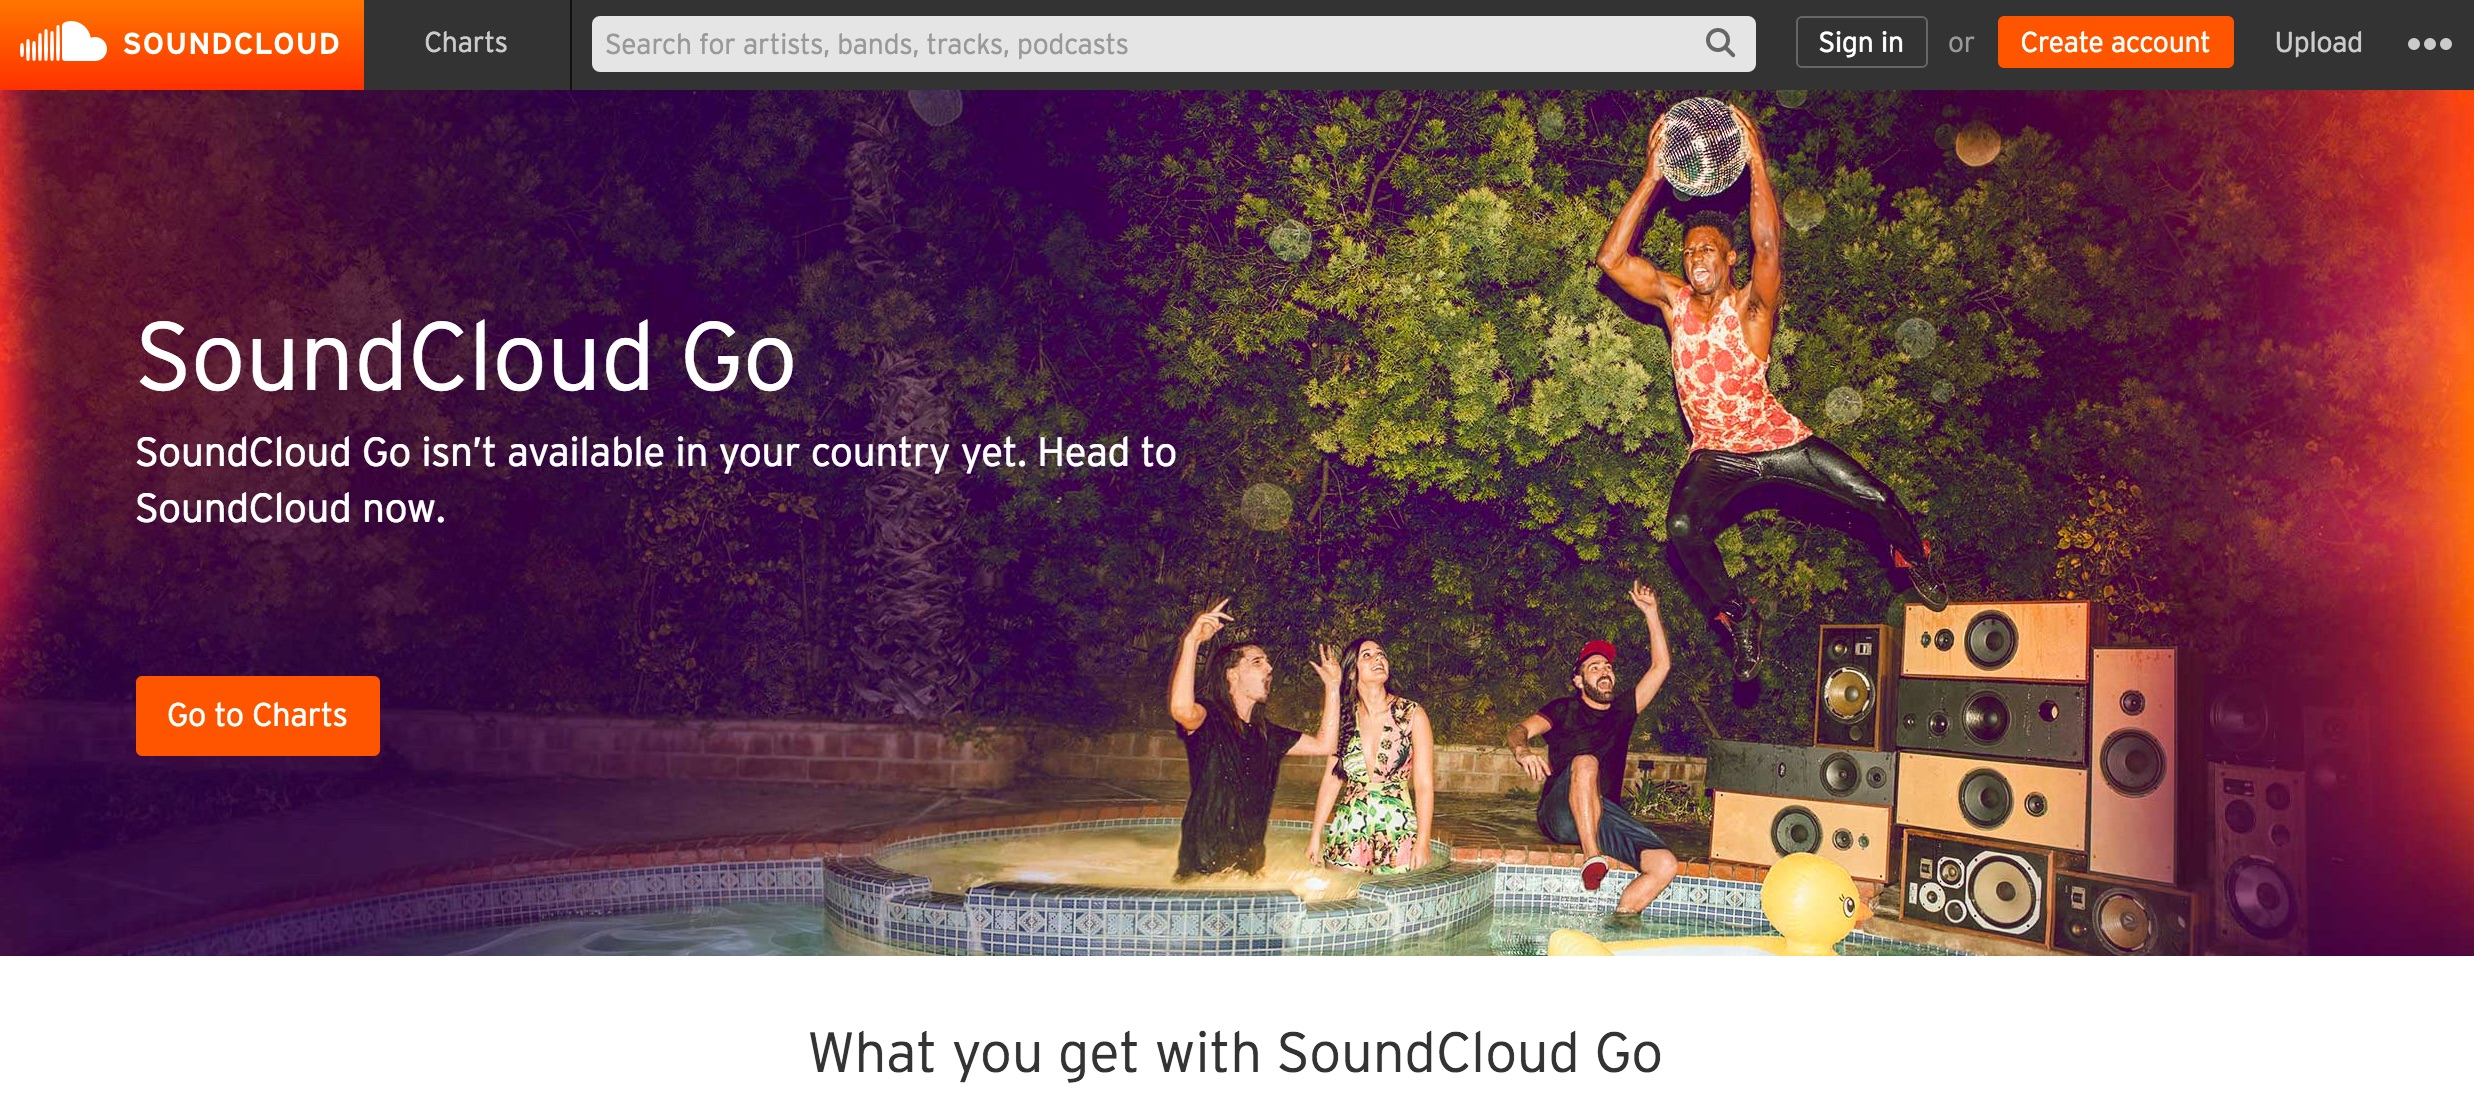 soundcloud-go-2